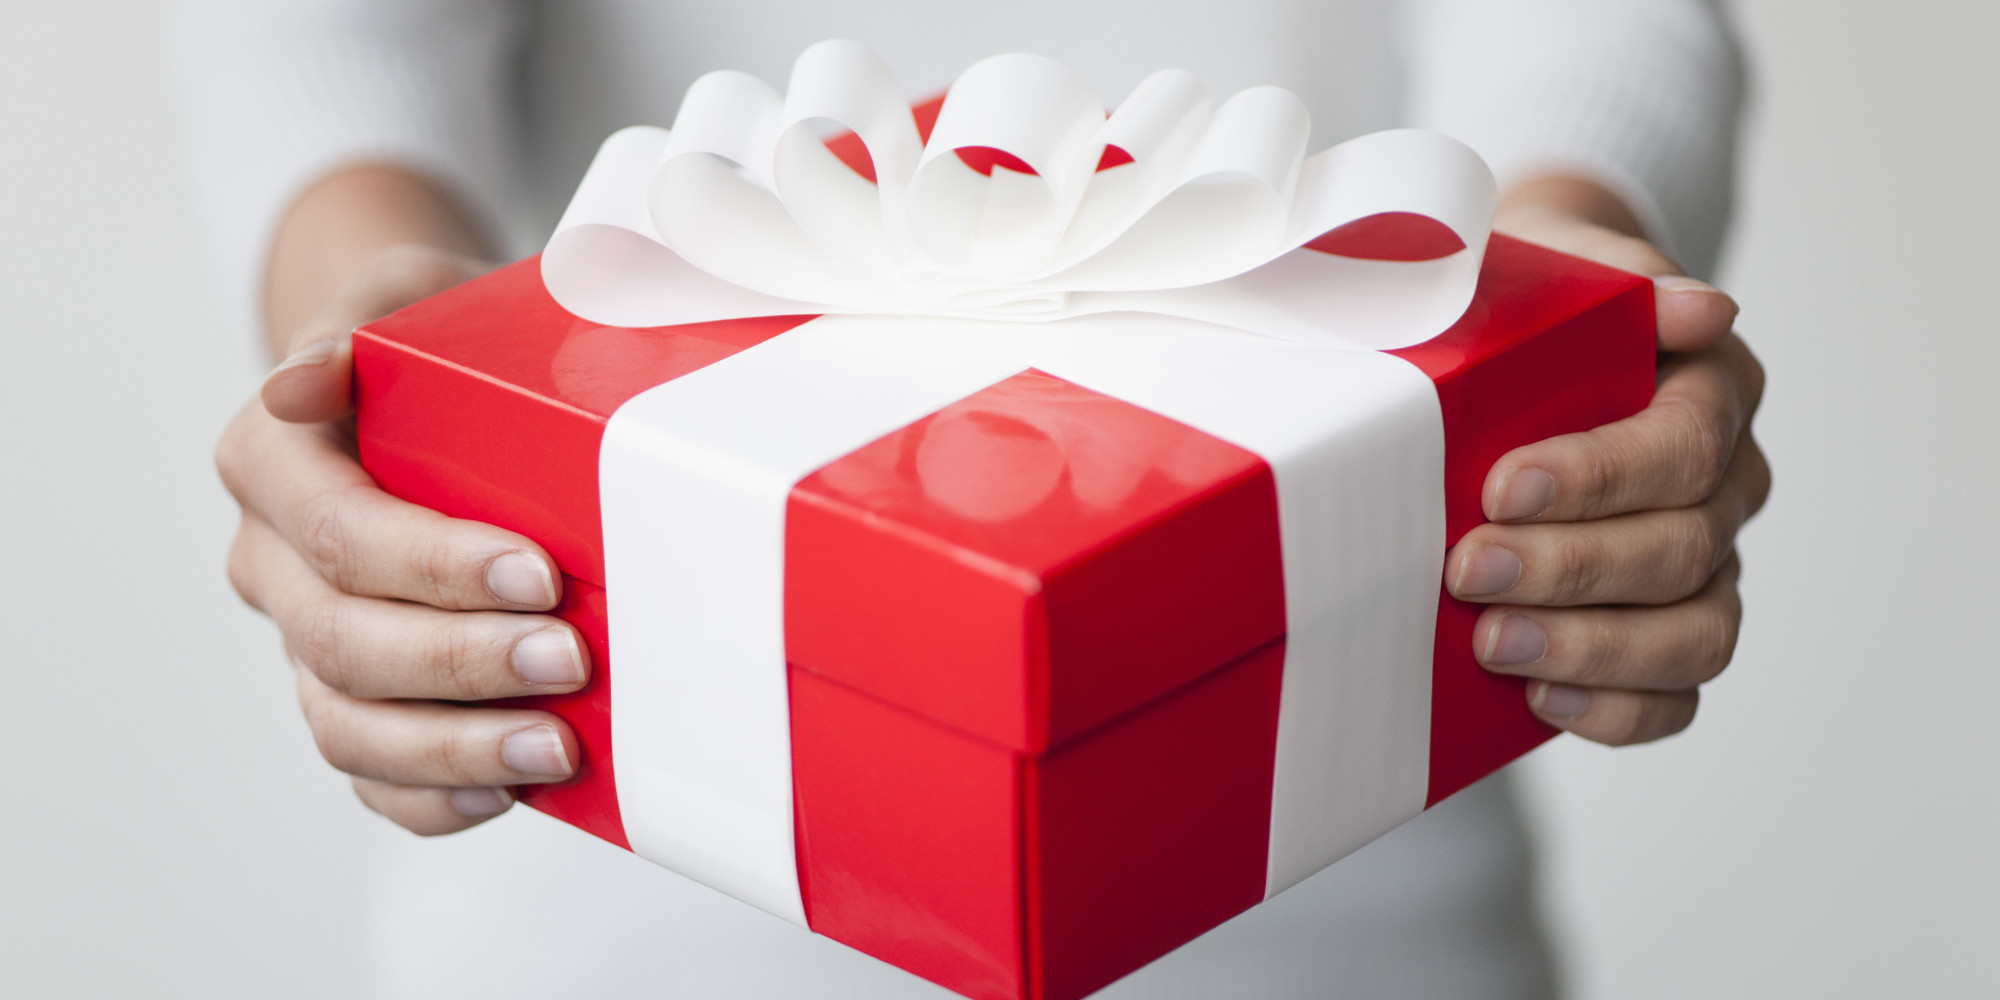 Surprising Strangers   The Seven Steps of Buying Gifts for People You Don't Know